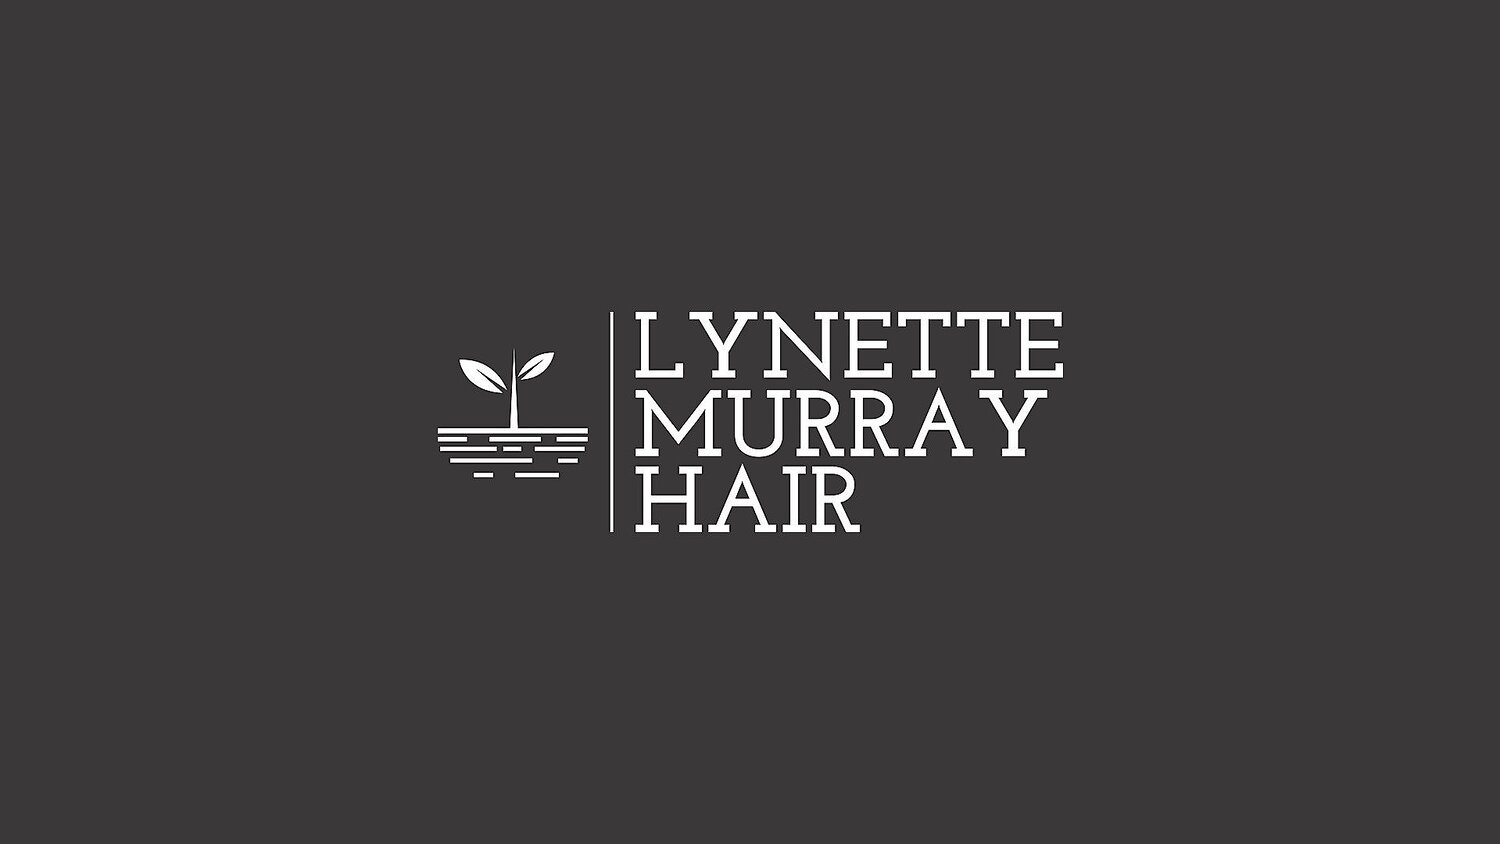 Lynette Murray Hair